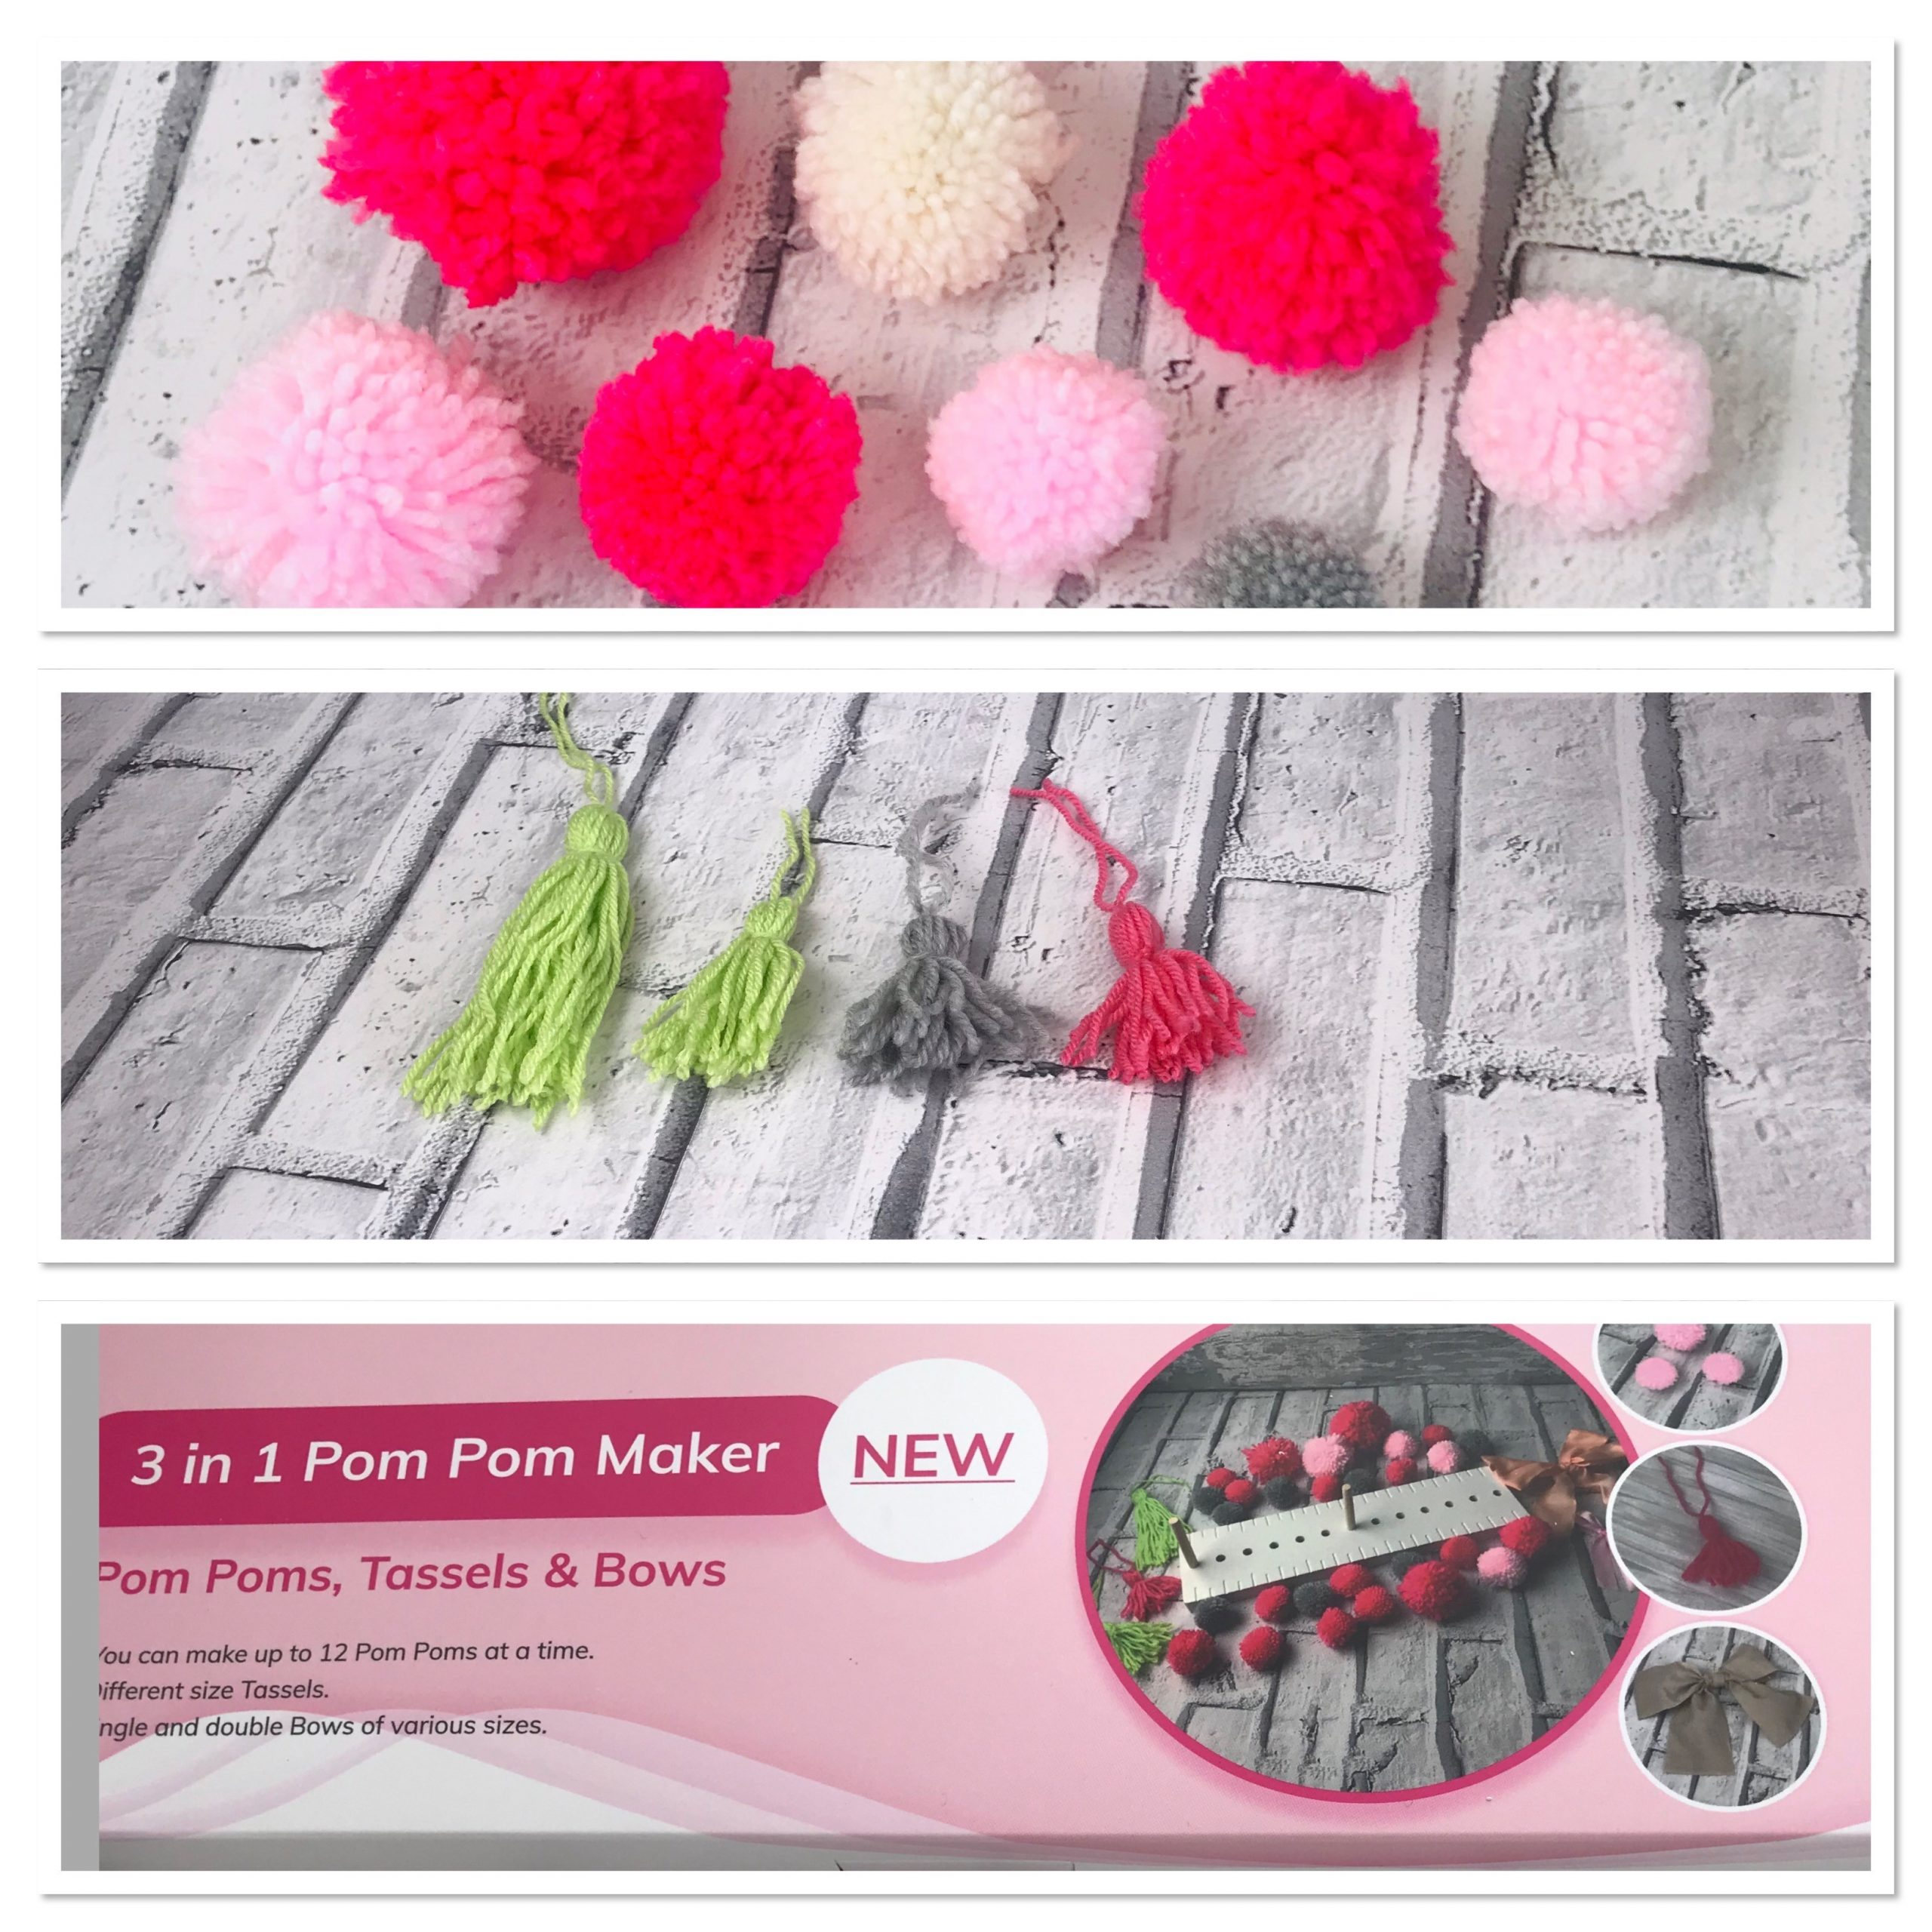 Pom Pom Maker 3 in 1 - New Product